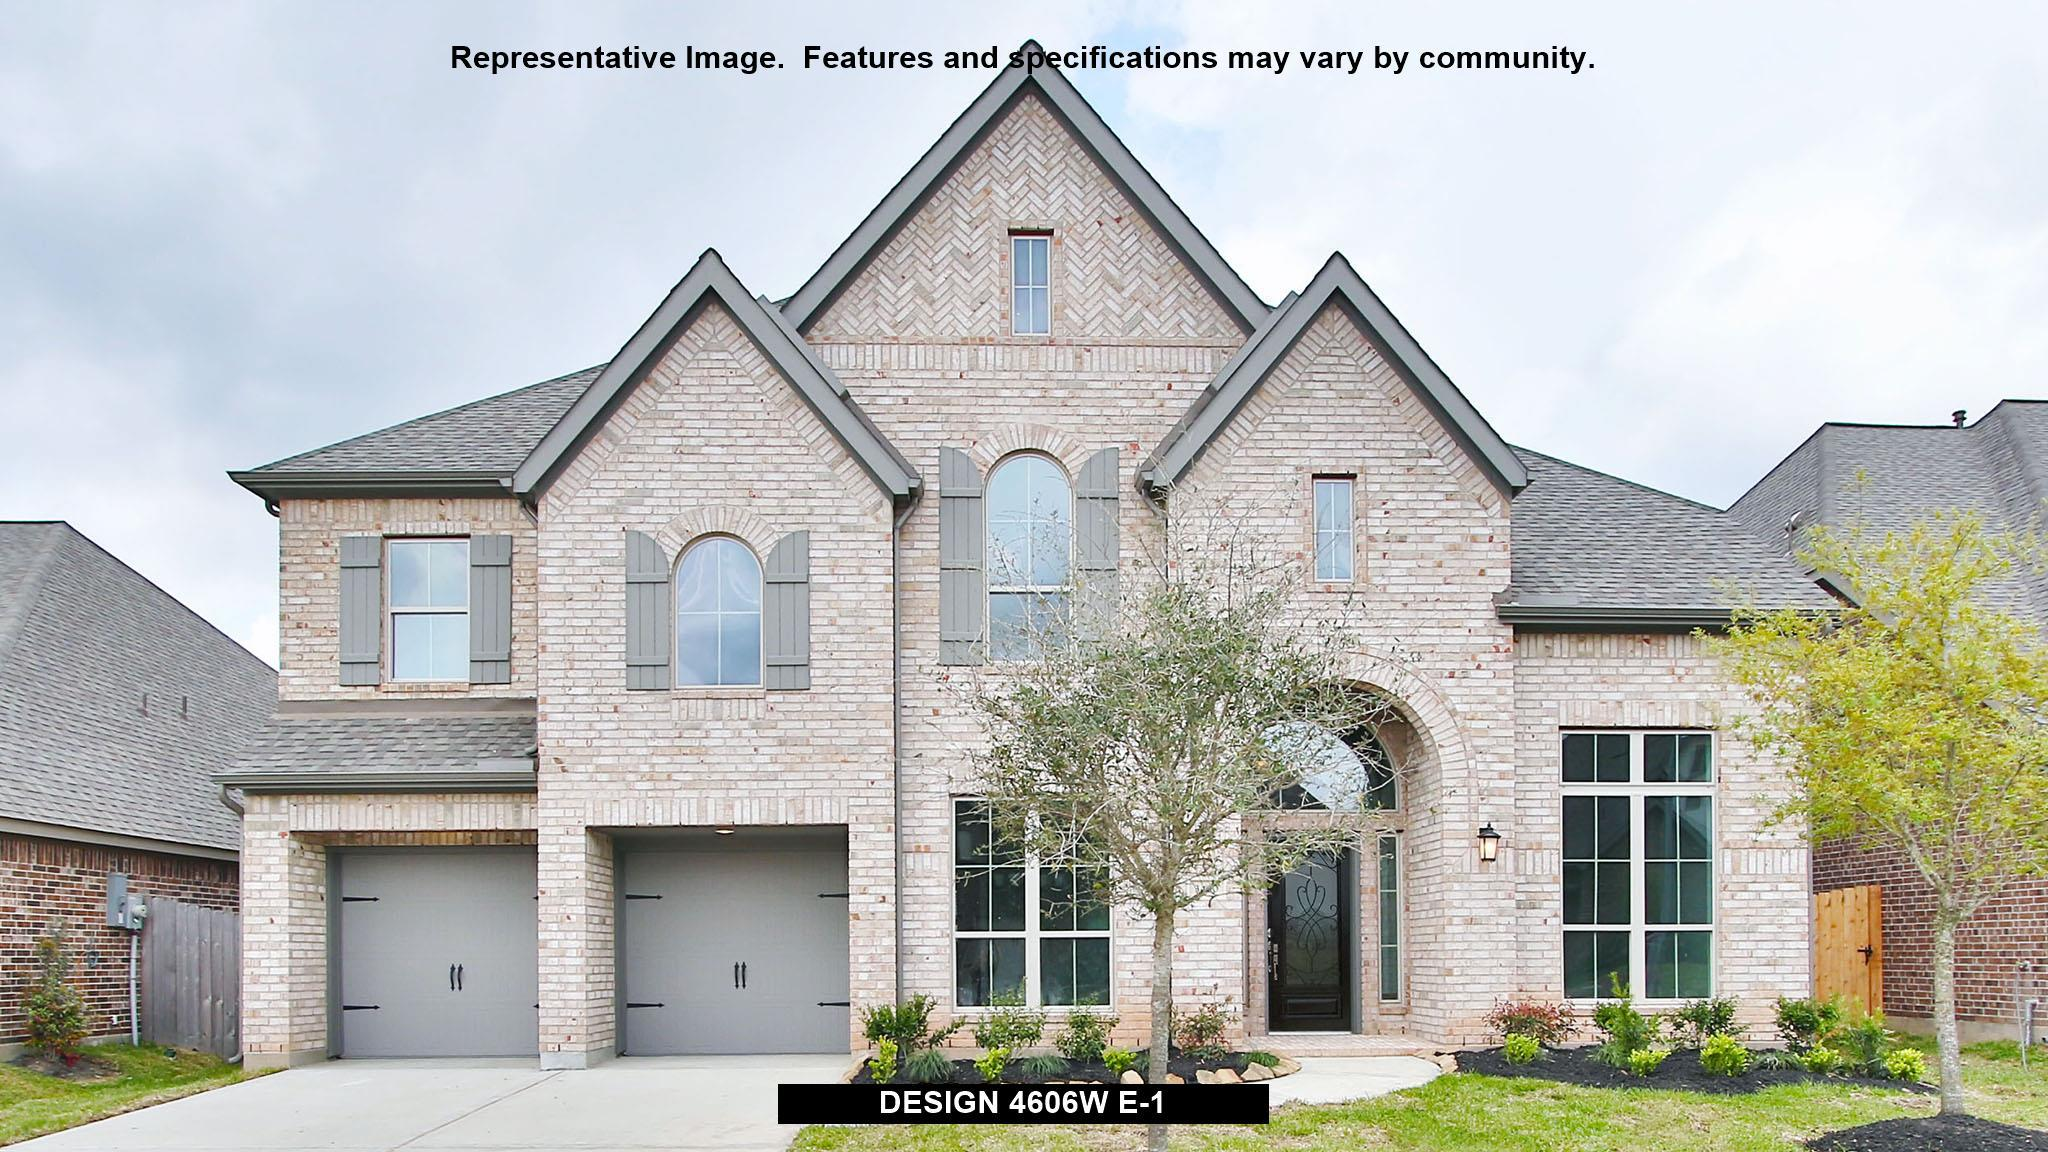 Single Family for Sale at Southlake 60' - 4606w 3407 Golden Cypress Lane Pearland, Texas 77584 United States